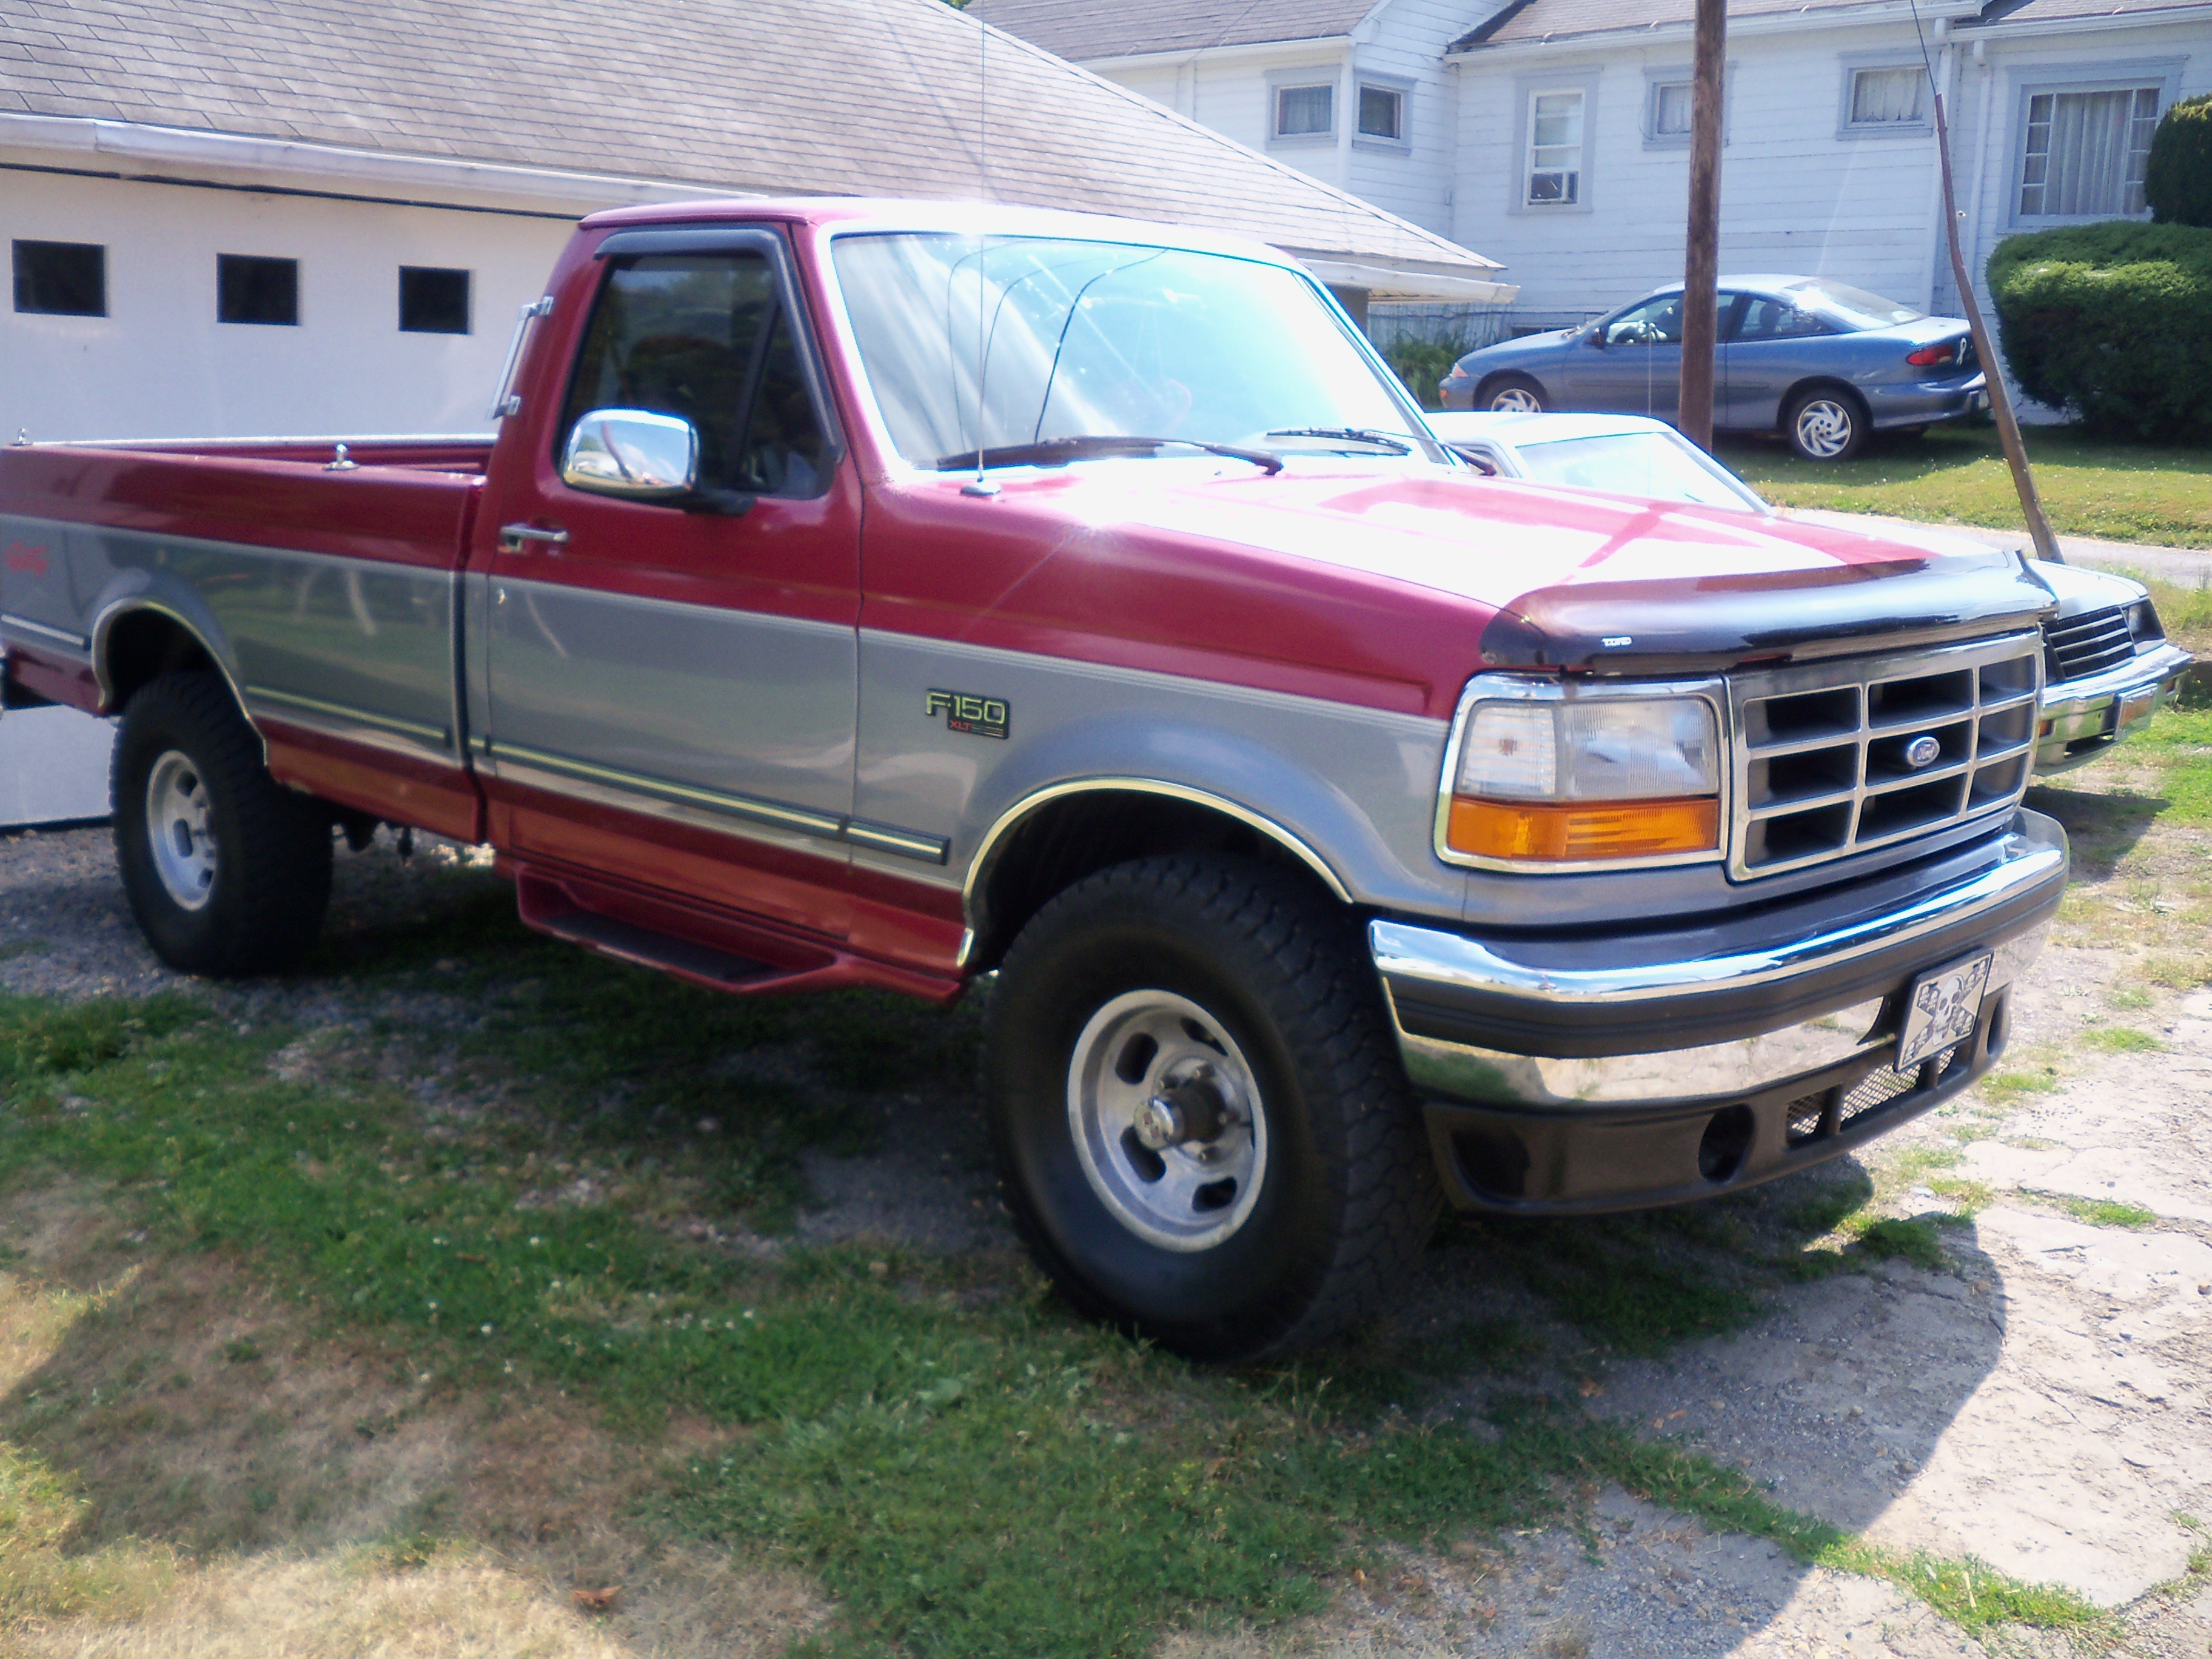 1995 F150 Roll Bar Roll Bar Question For Those Who Kept